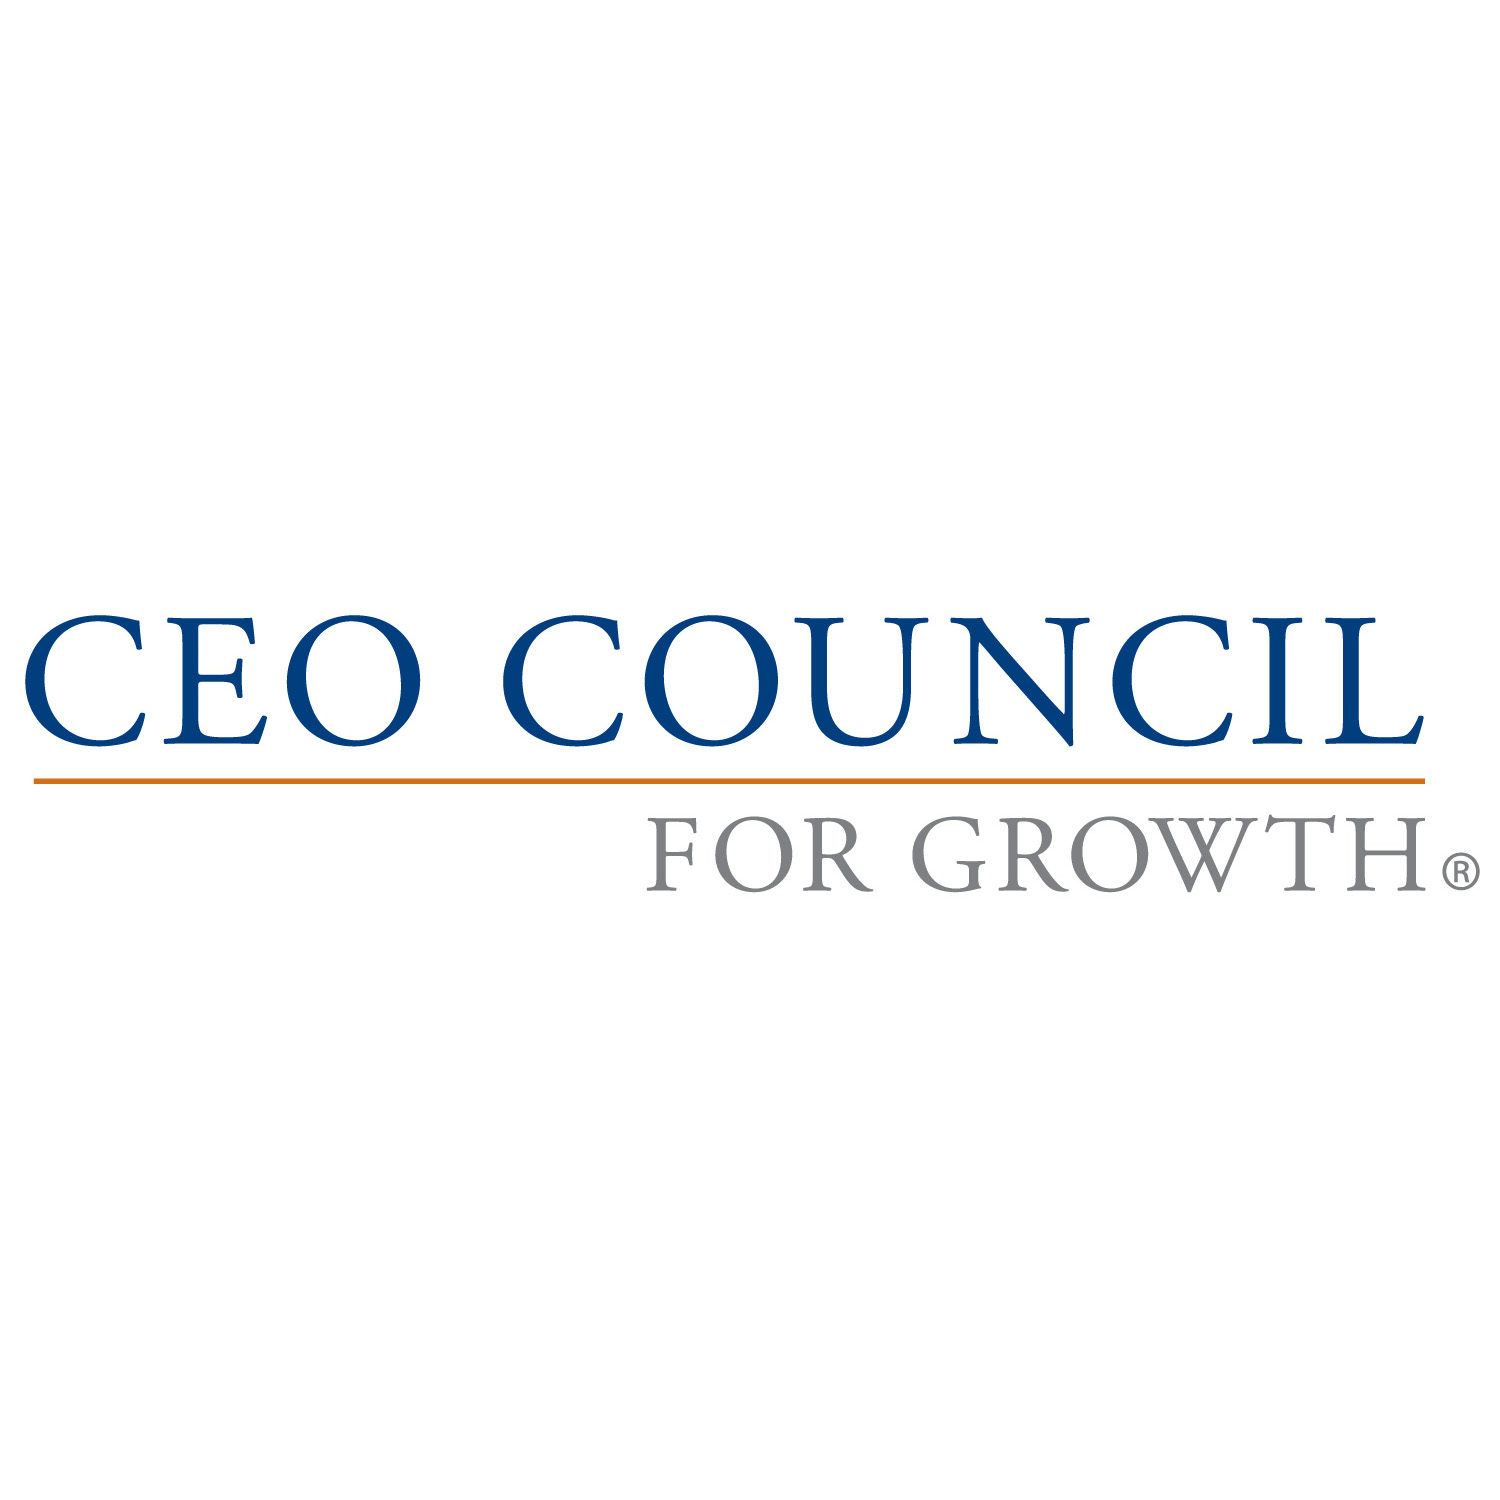 LOGO_-_CEO_Council_for_Growth2.jpg